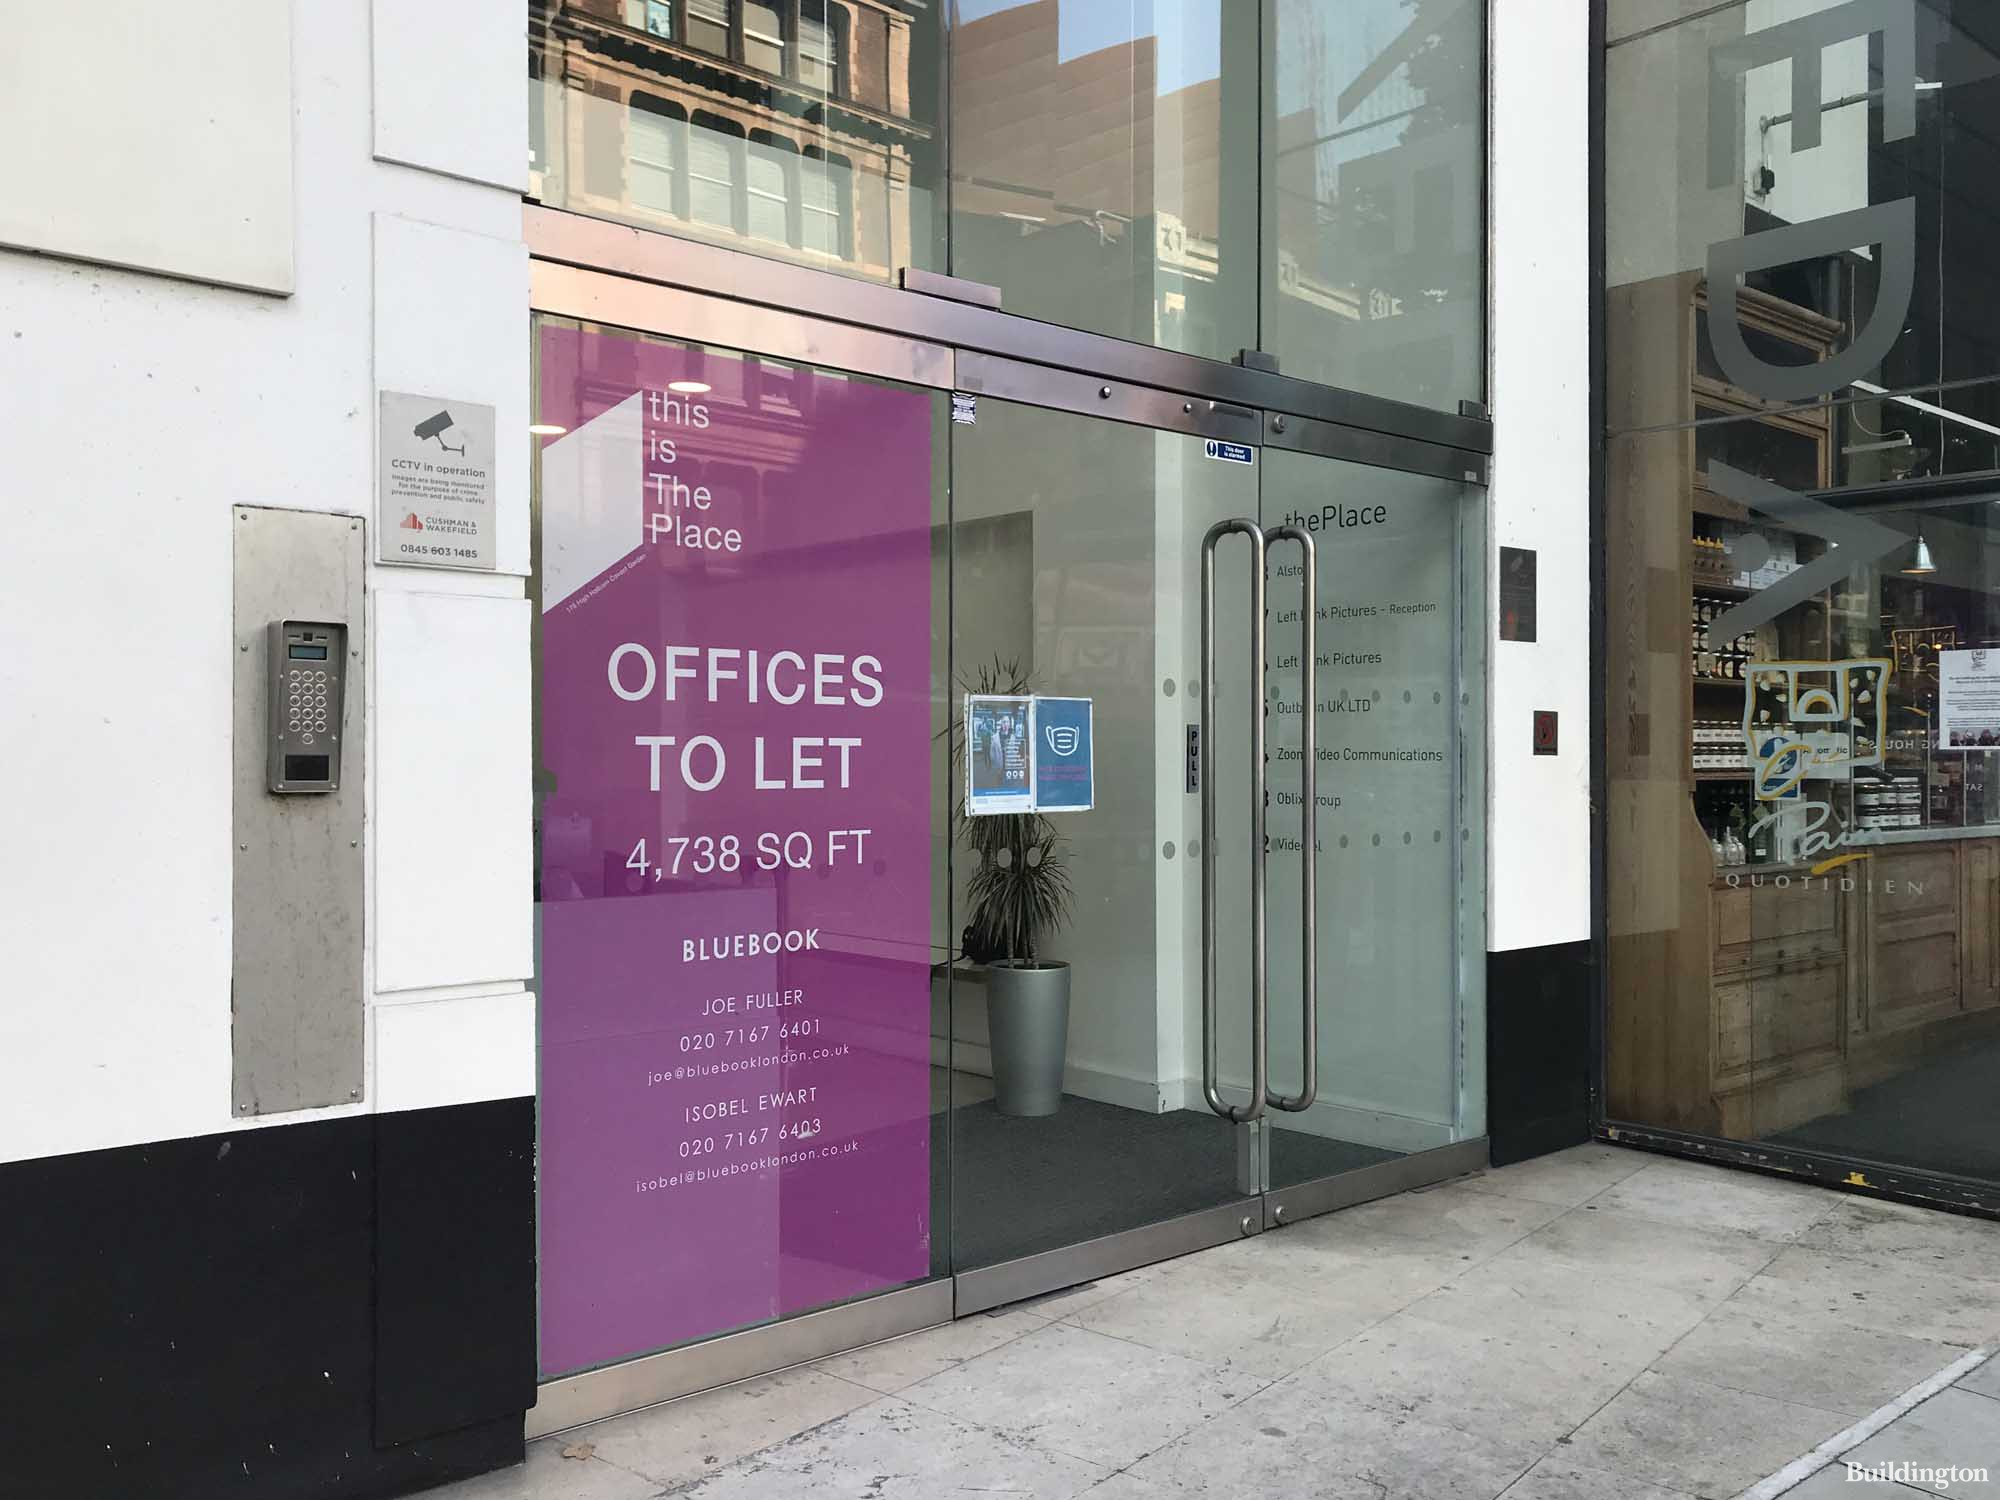 This is The Place at 175 High Holborn in London WC1. Offices to let by Bluebook.